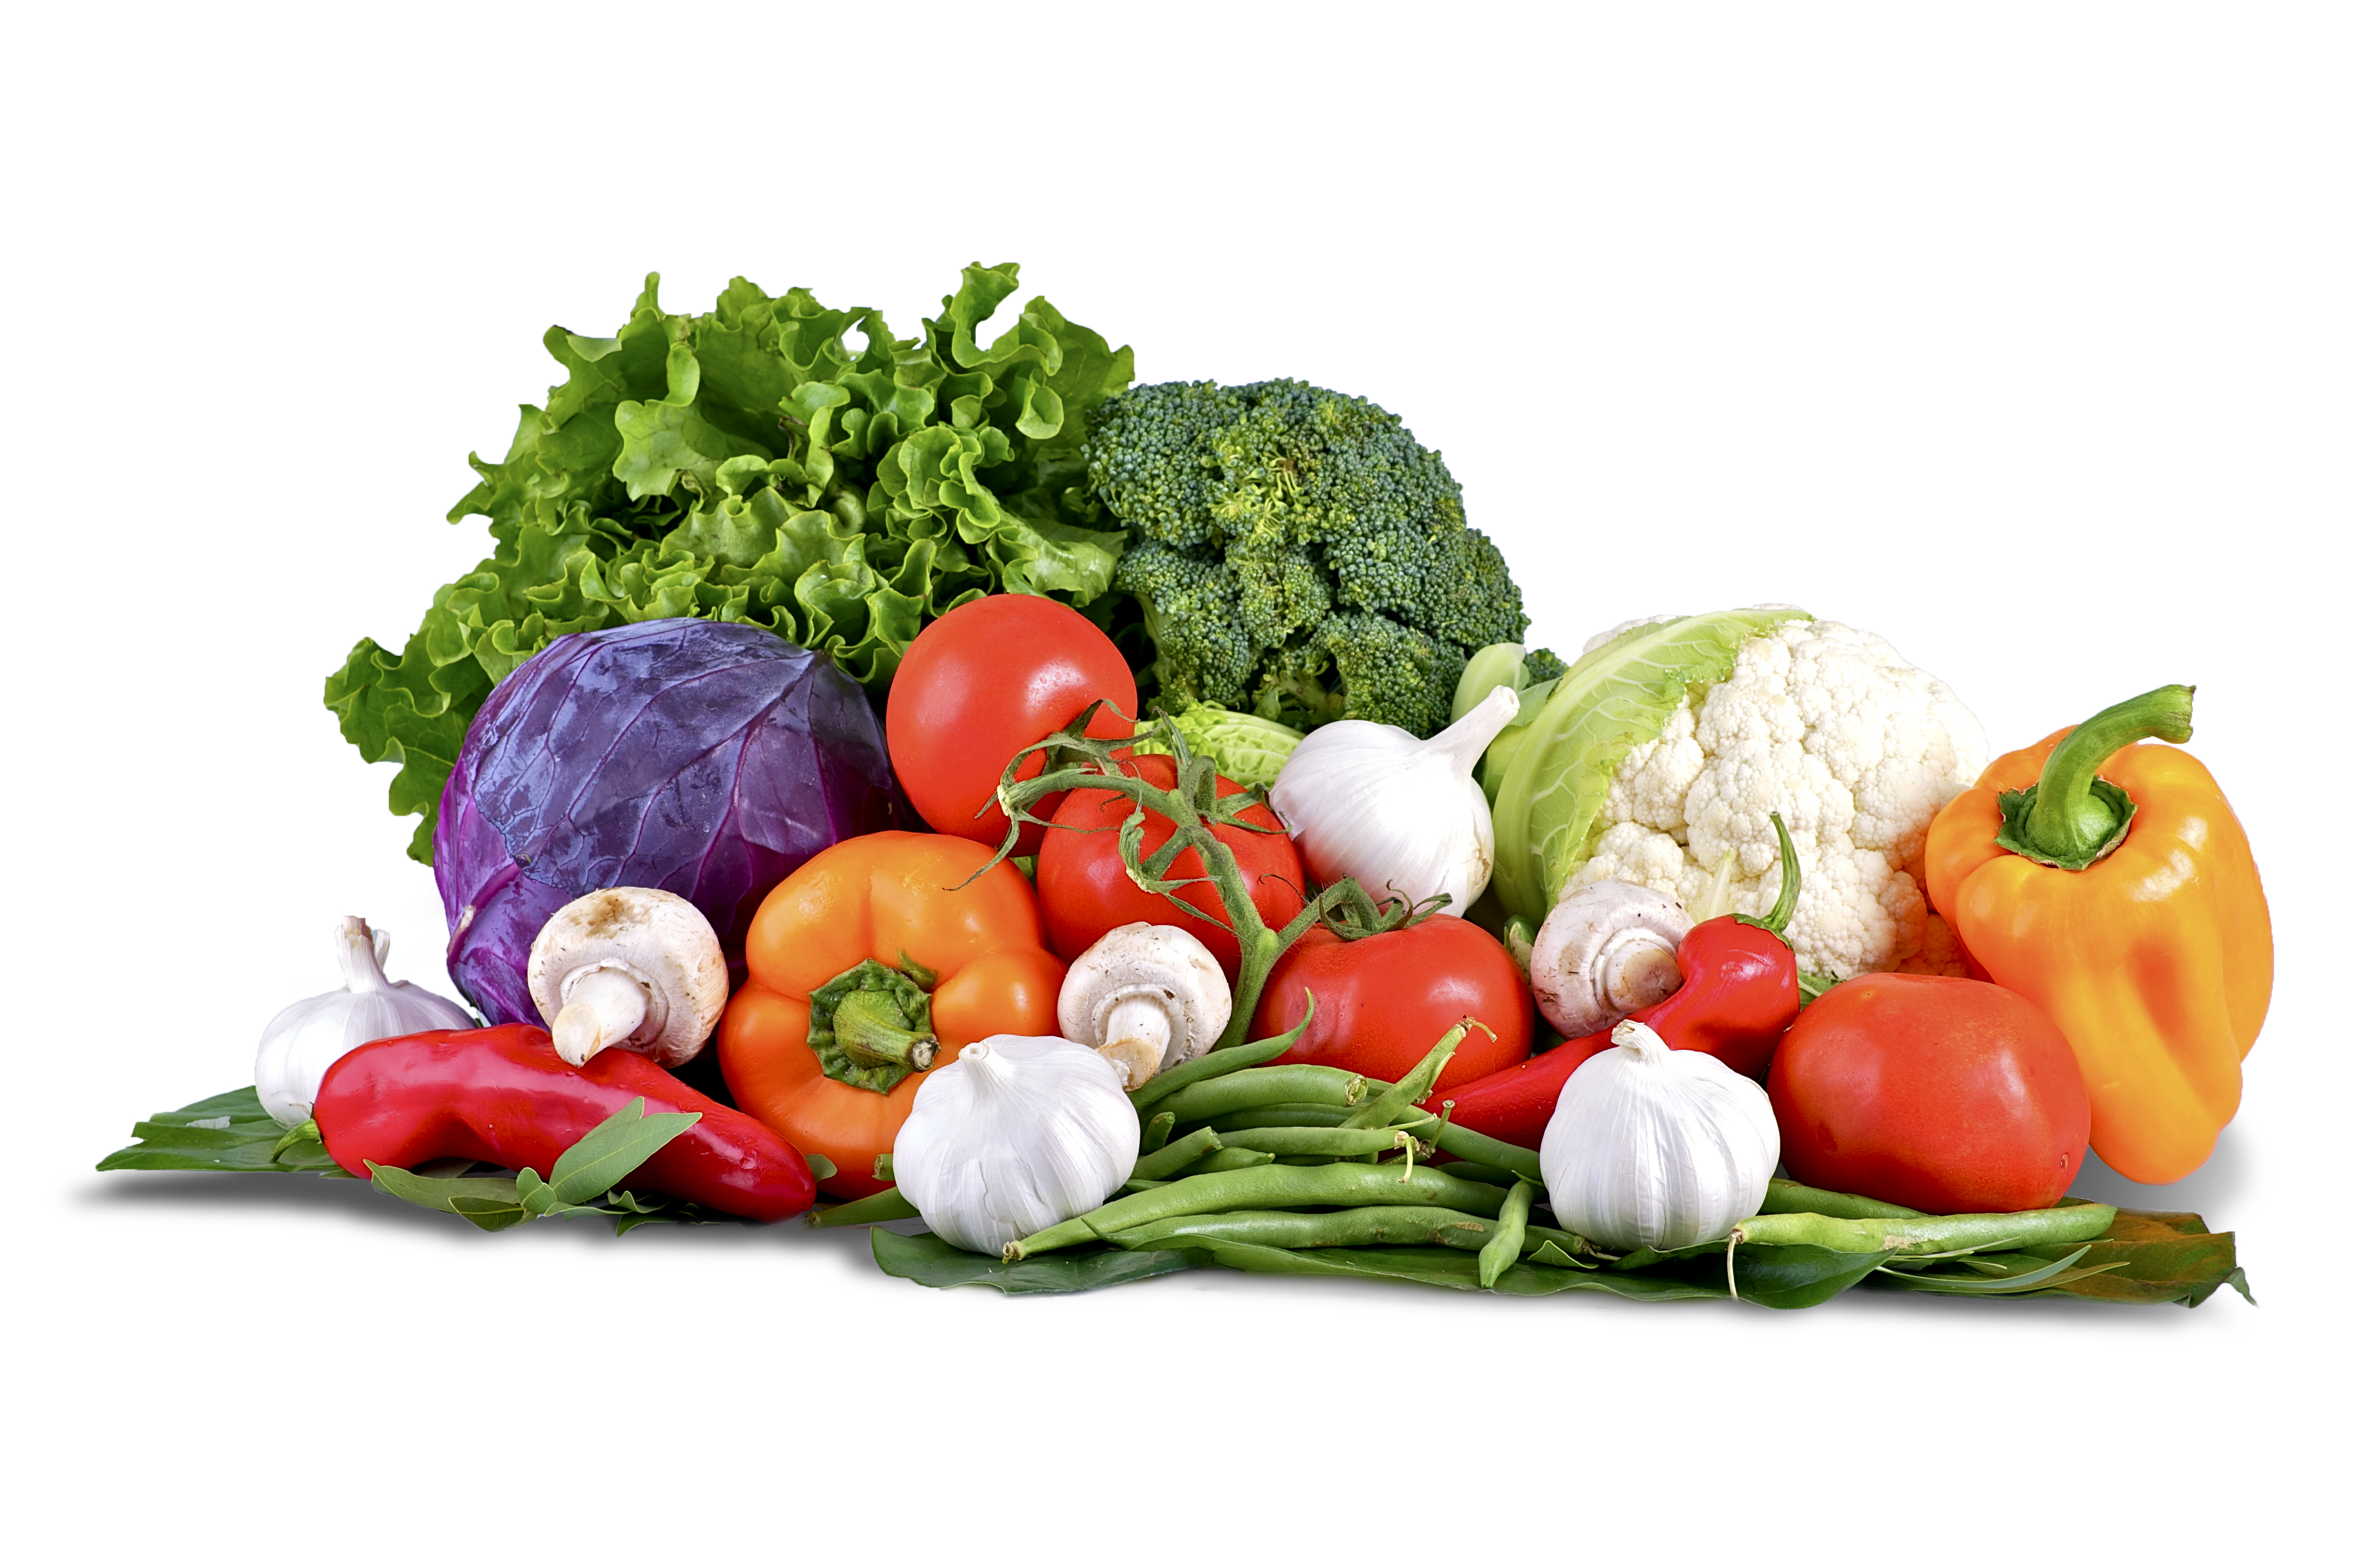 Vegetables png images. Raw transparent pluspng vegetable